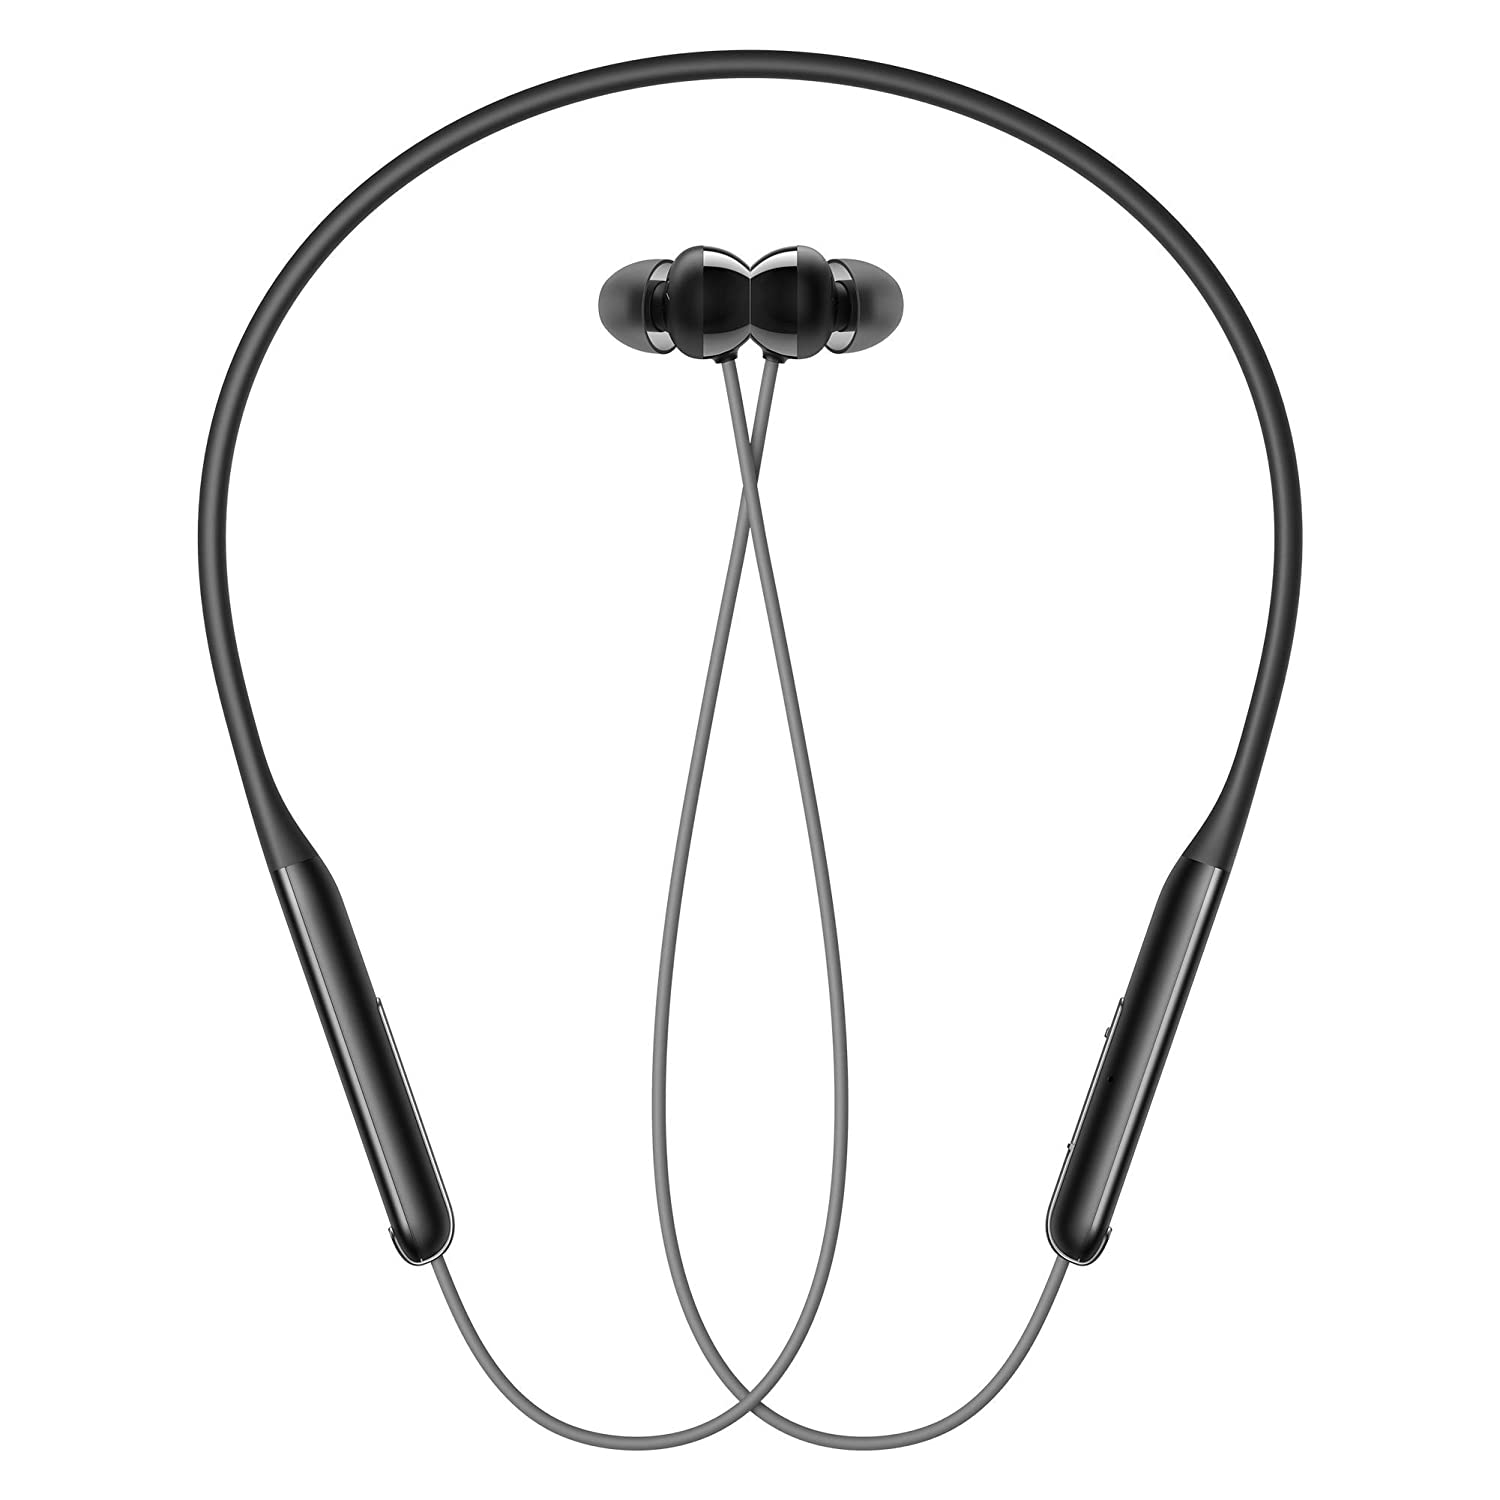 OPPO ENCO M31 Wireless in-Ear Bluetooth Earphones with Mic (Black)